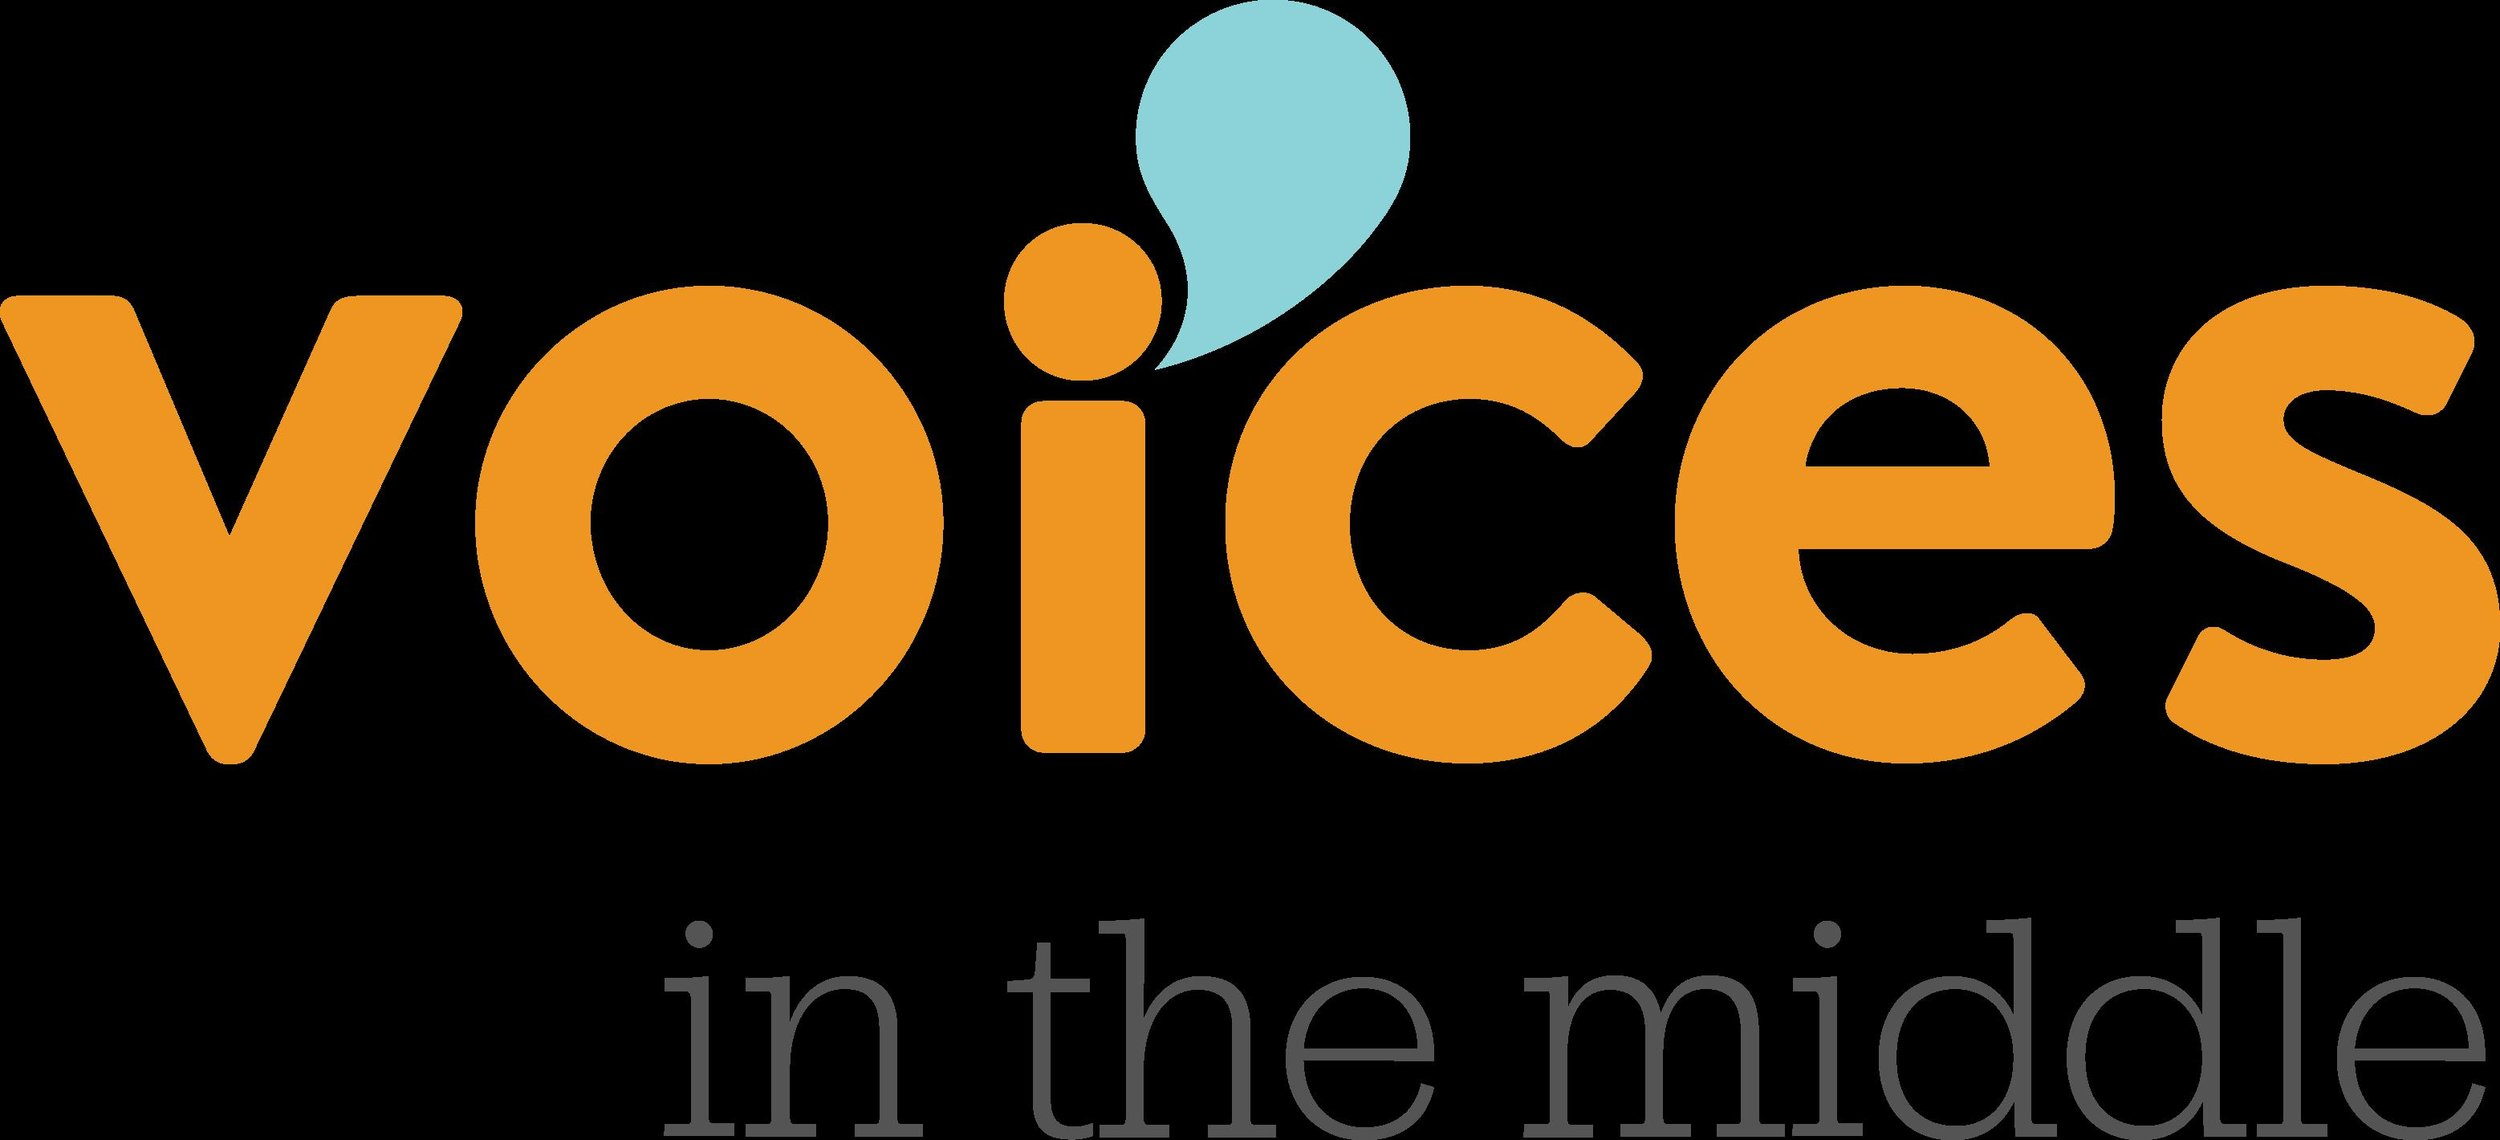 Voices in the middle logo .jpg